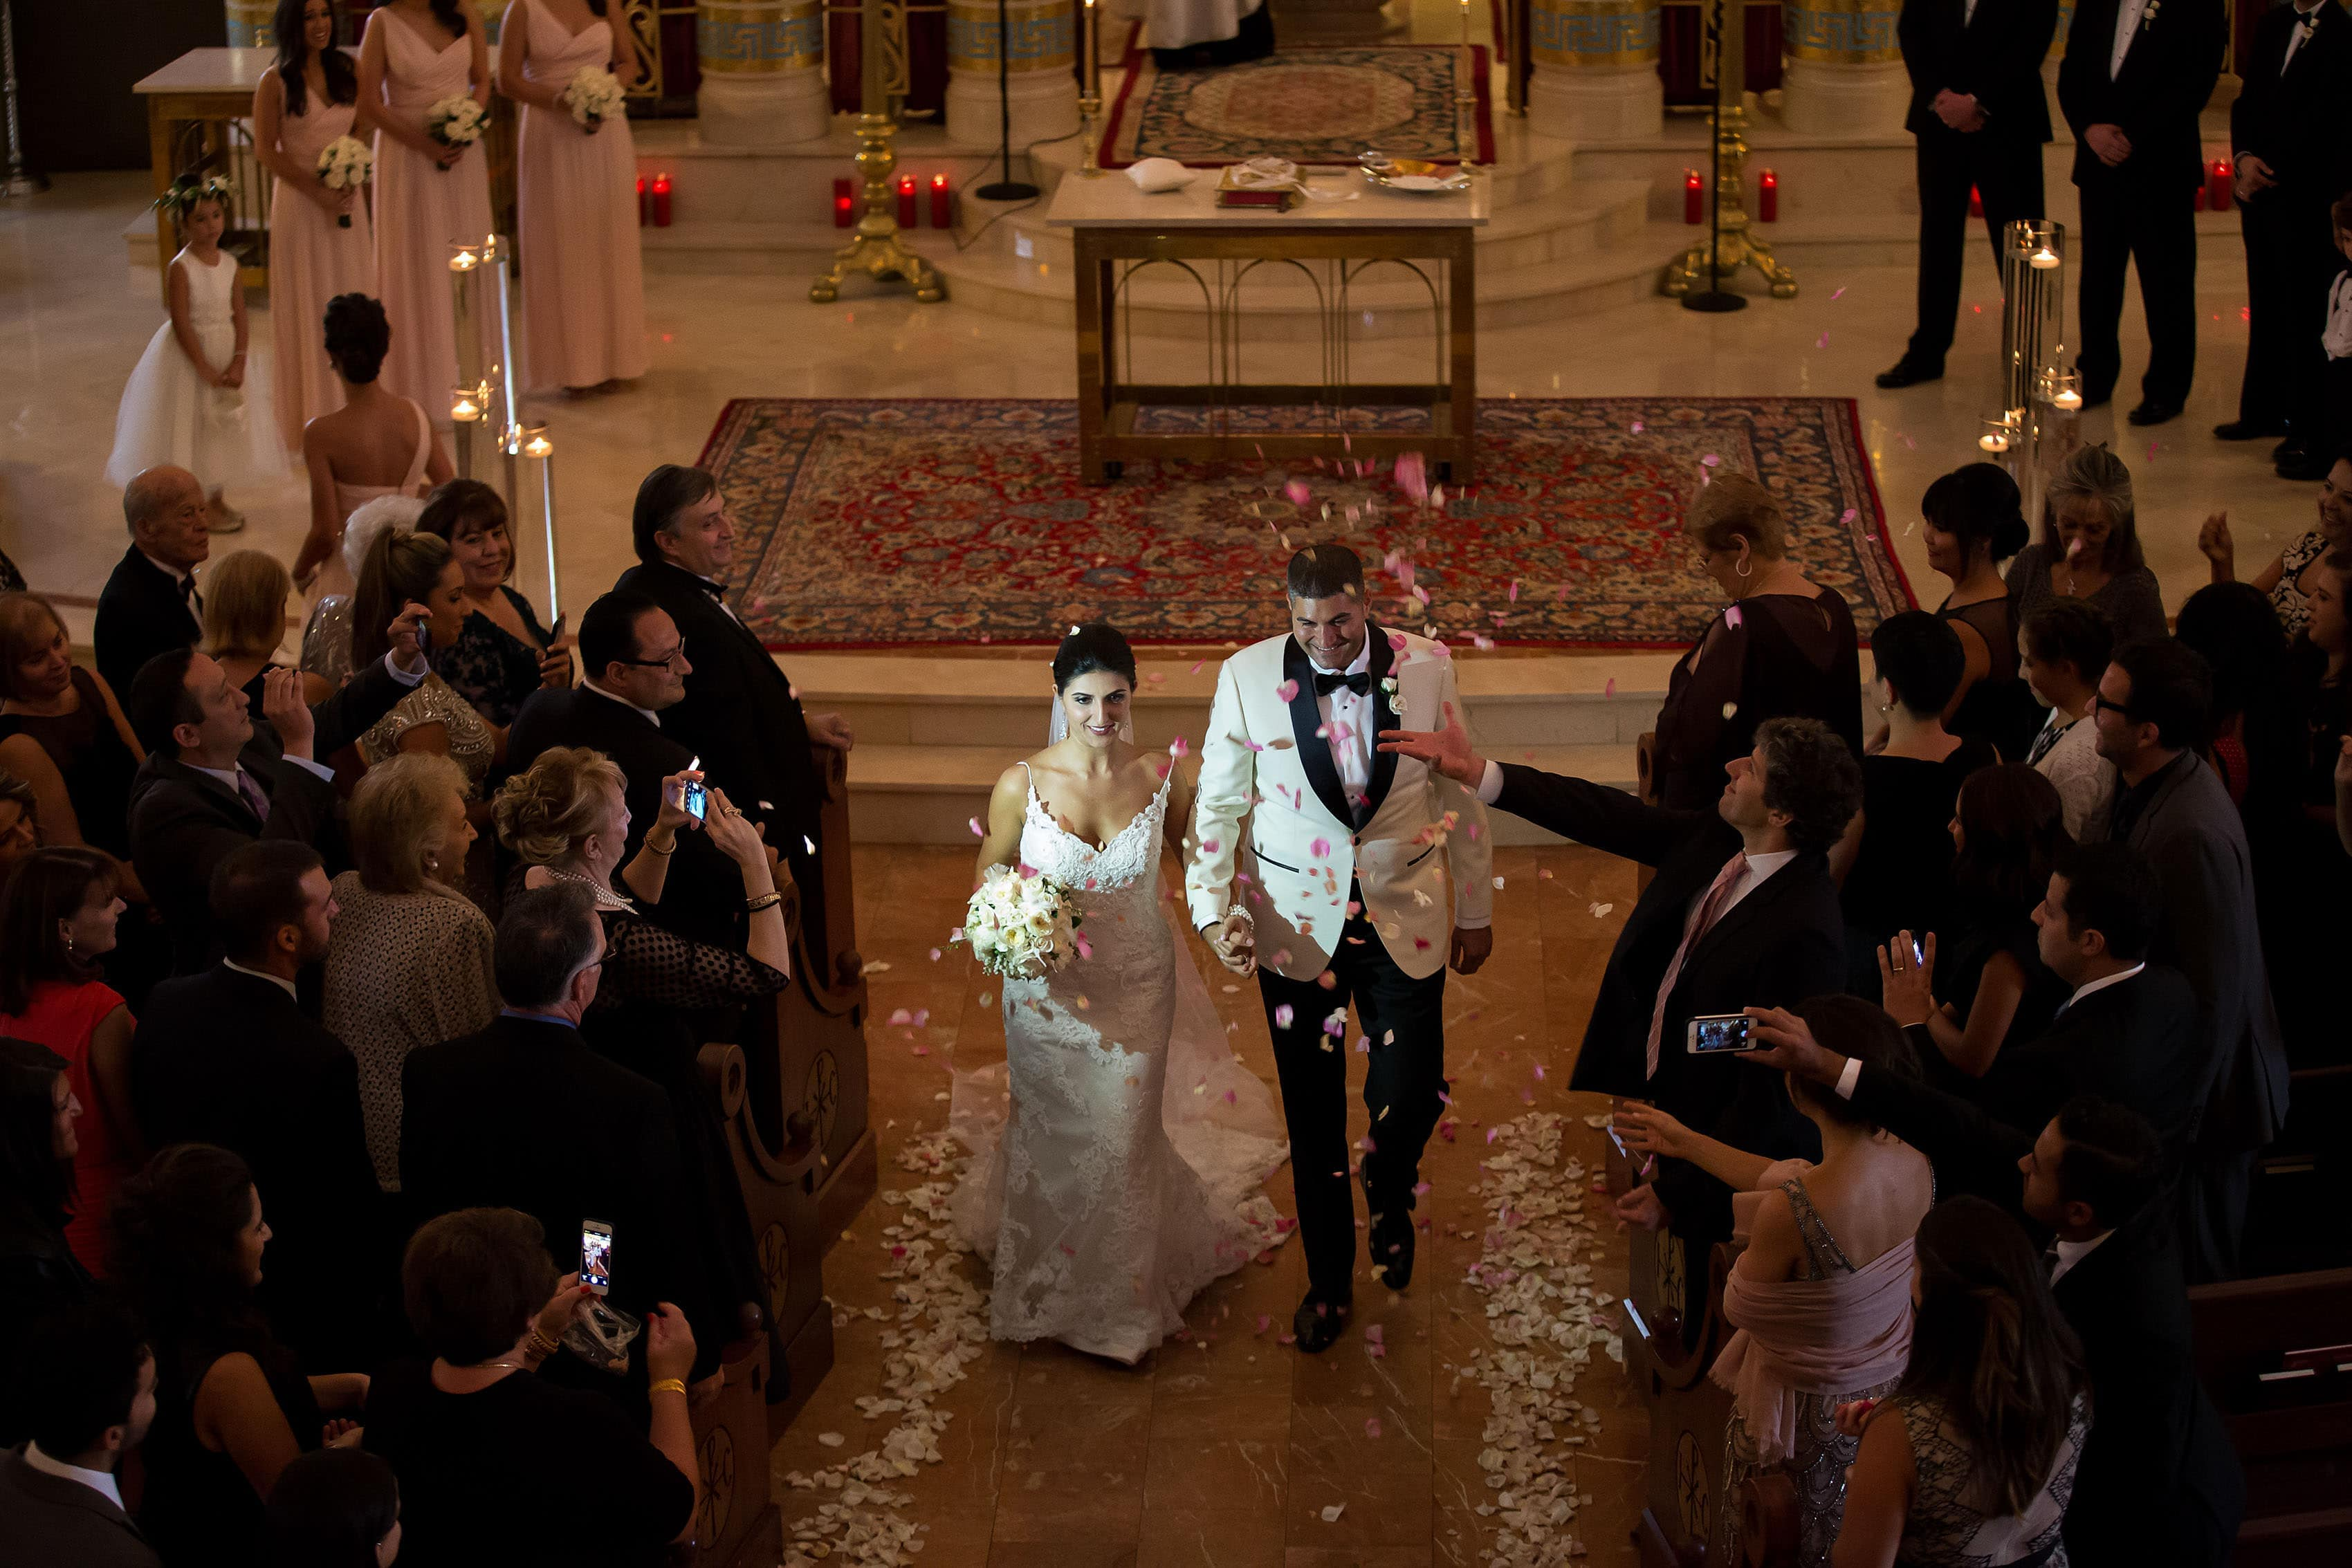 The couple are showered with rose pedals during their Denver Greek wedding at Assumption Greek Orthodox Cathedral